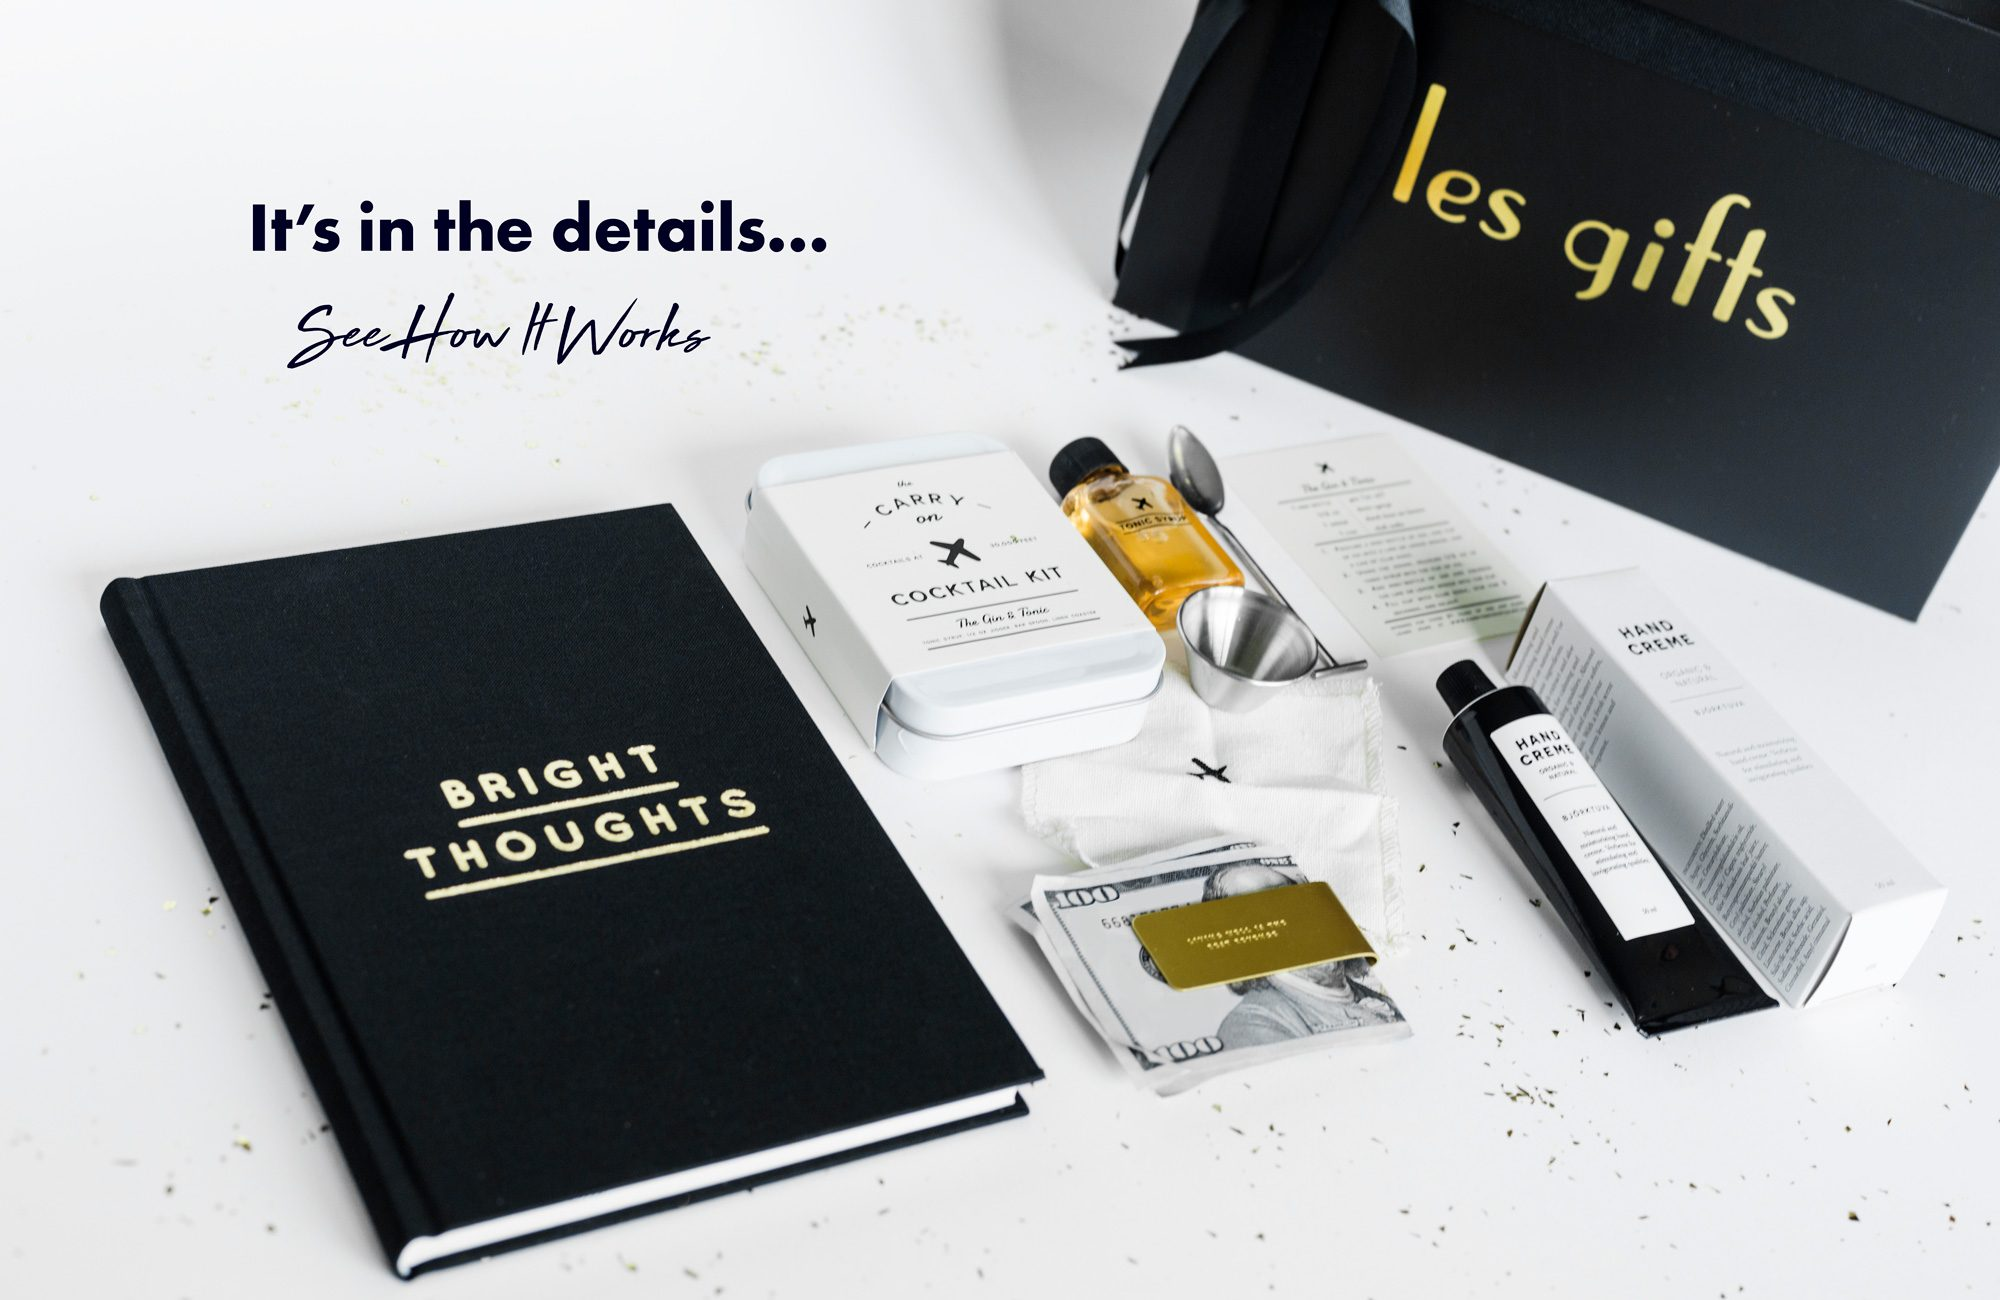 Les Gifts Buy And Send Premium Design Gifts Online